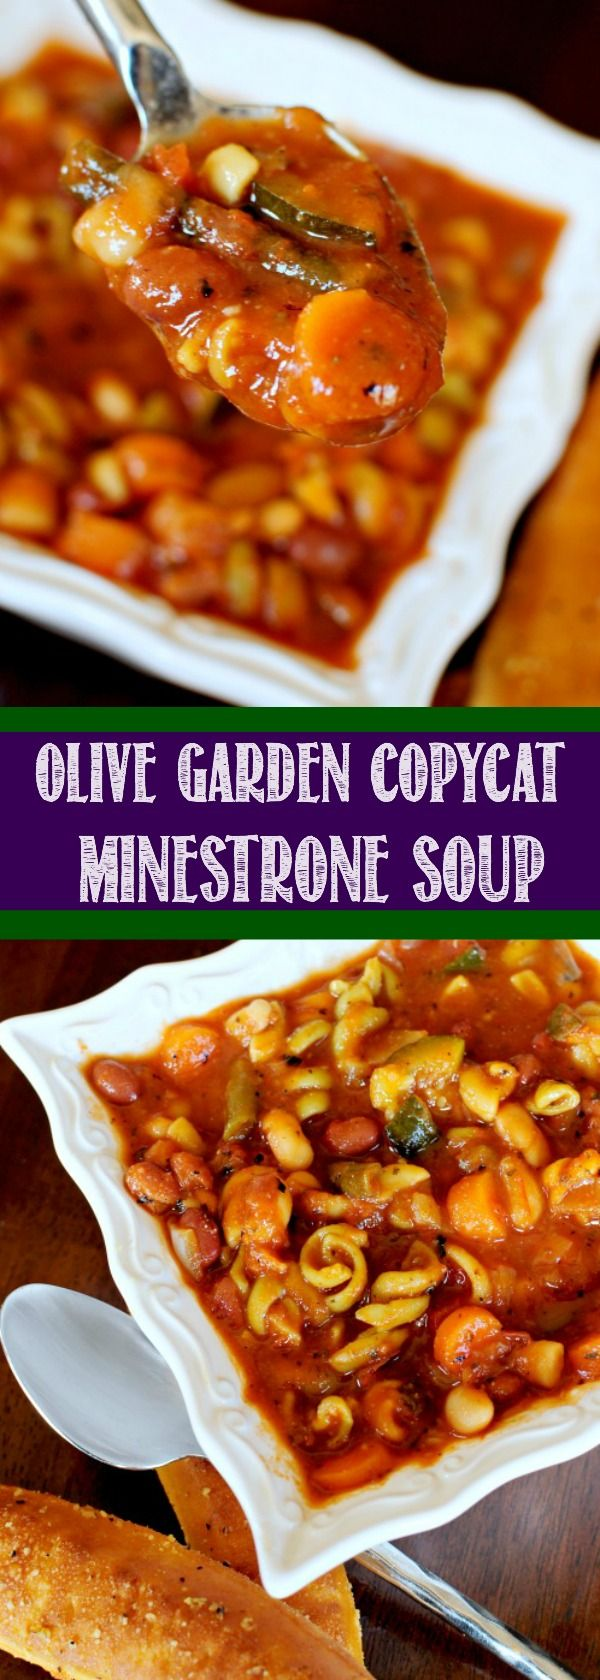 Olive Garden Minestrone Soup Copycat Recipe tastes just like the original – maybe even better! This favorite vegetarian soup is hearty, healthy, and ready in 30 minutes!